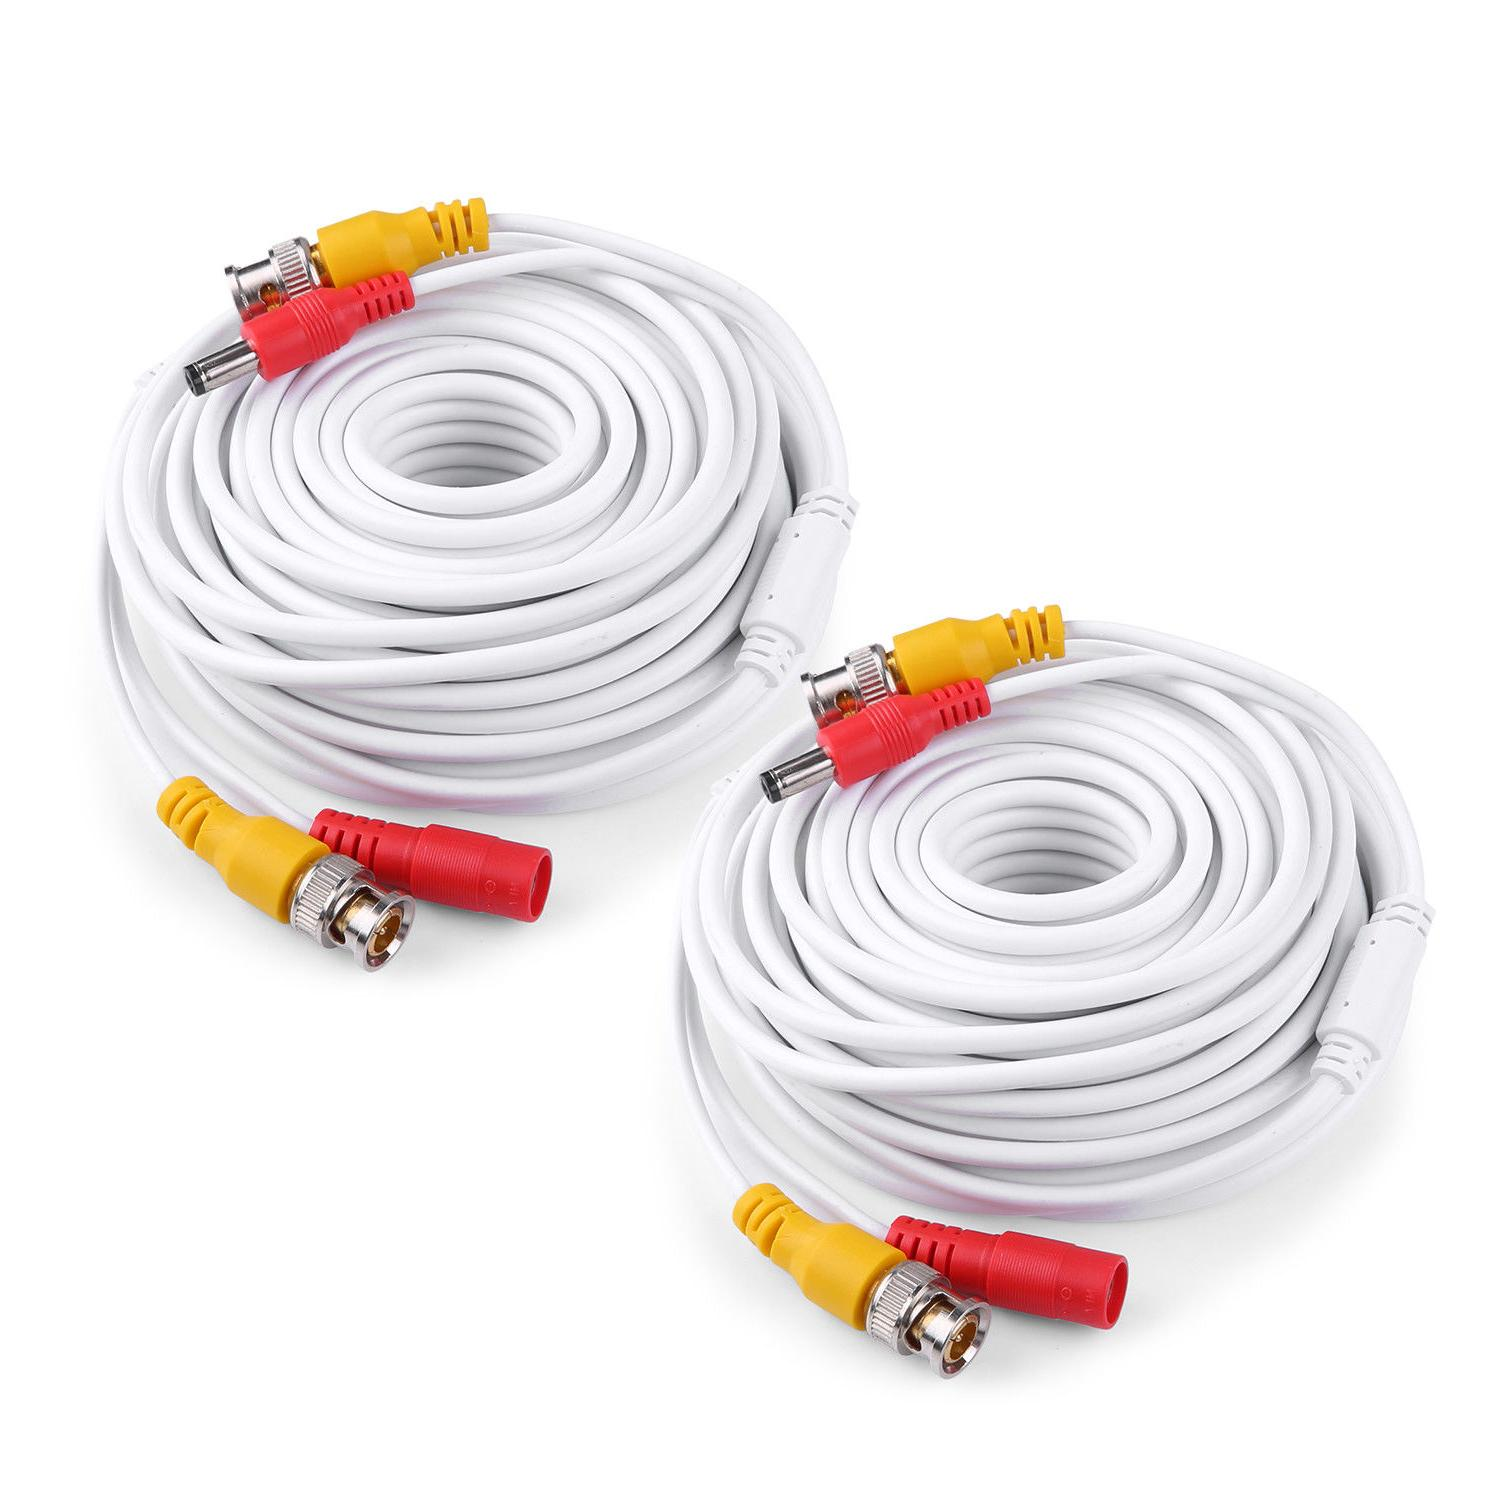 ANNKE 25/50/60/100/150ft HD Power Cable for Security Camera